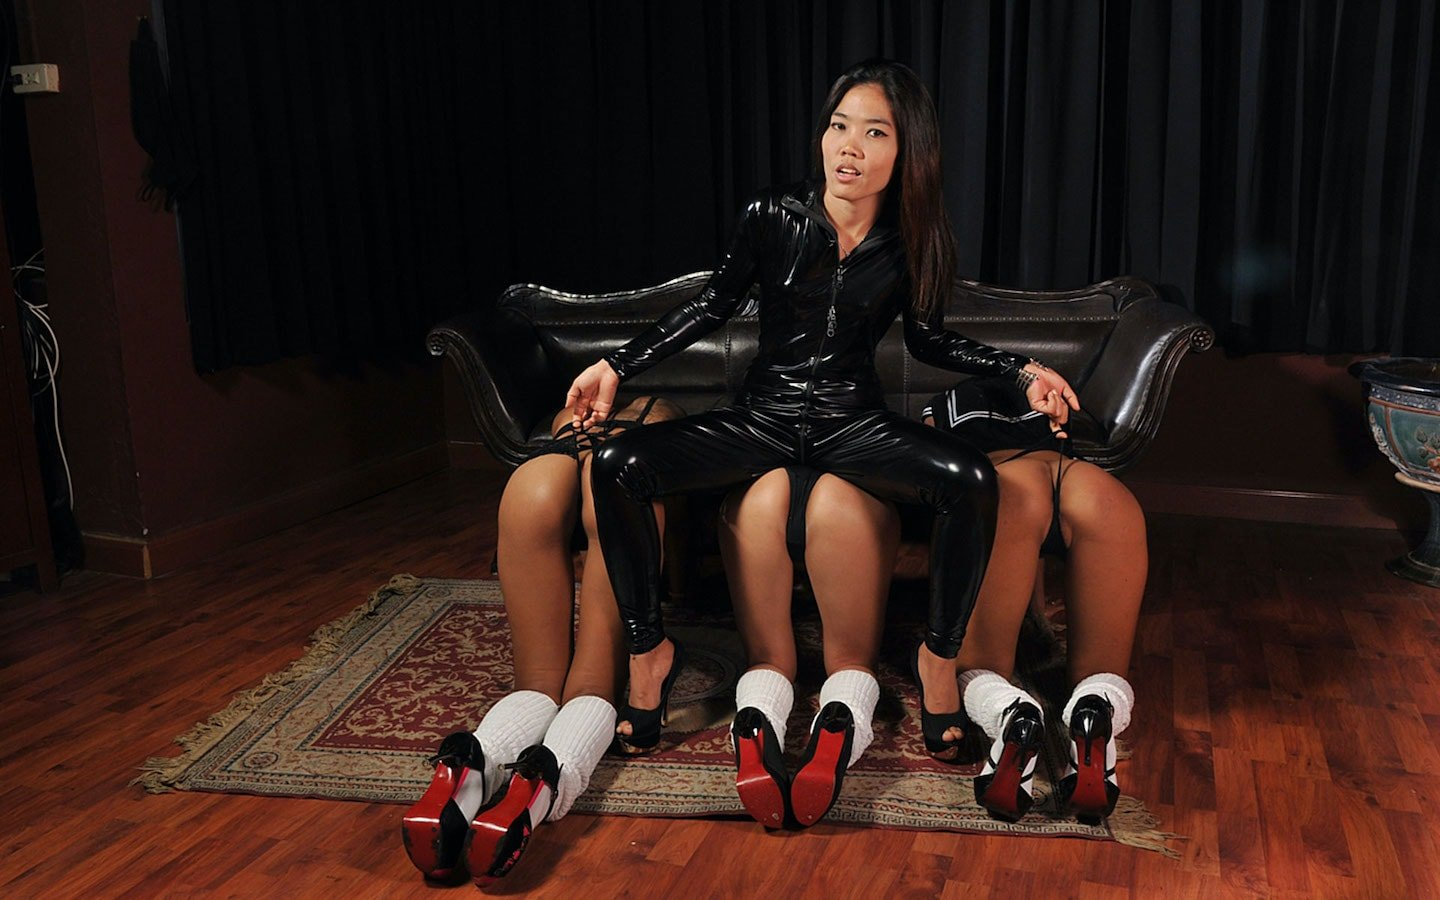 Thai mistress with female slaves at a bdsm and fetish club in Bangkok